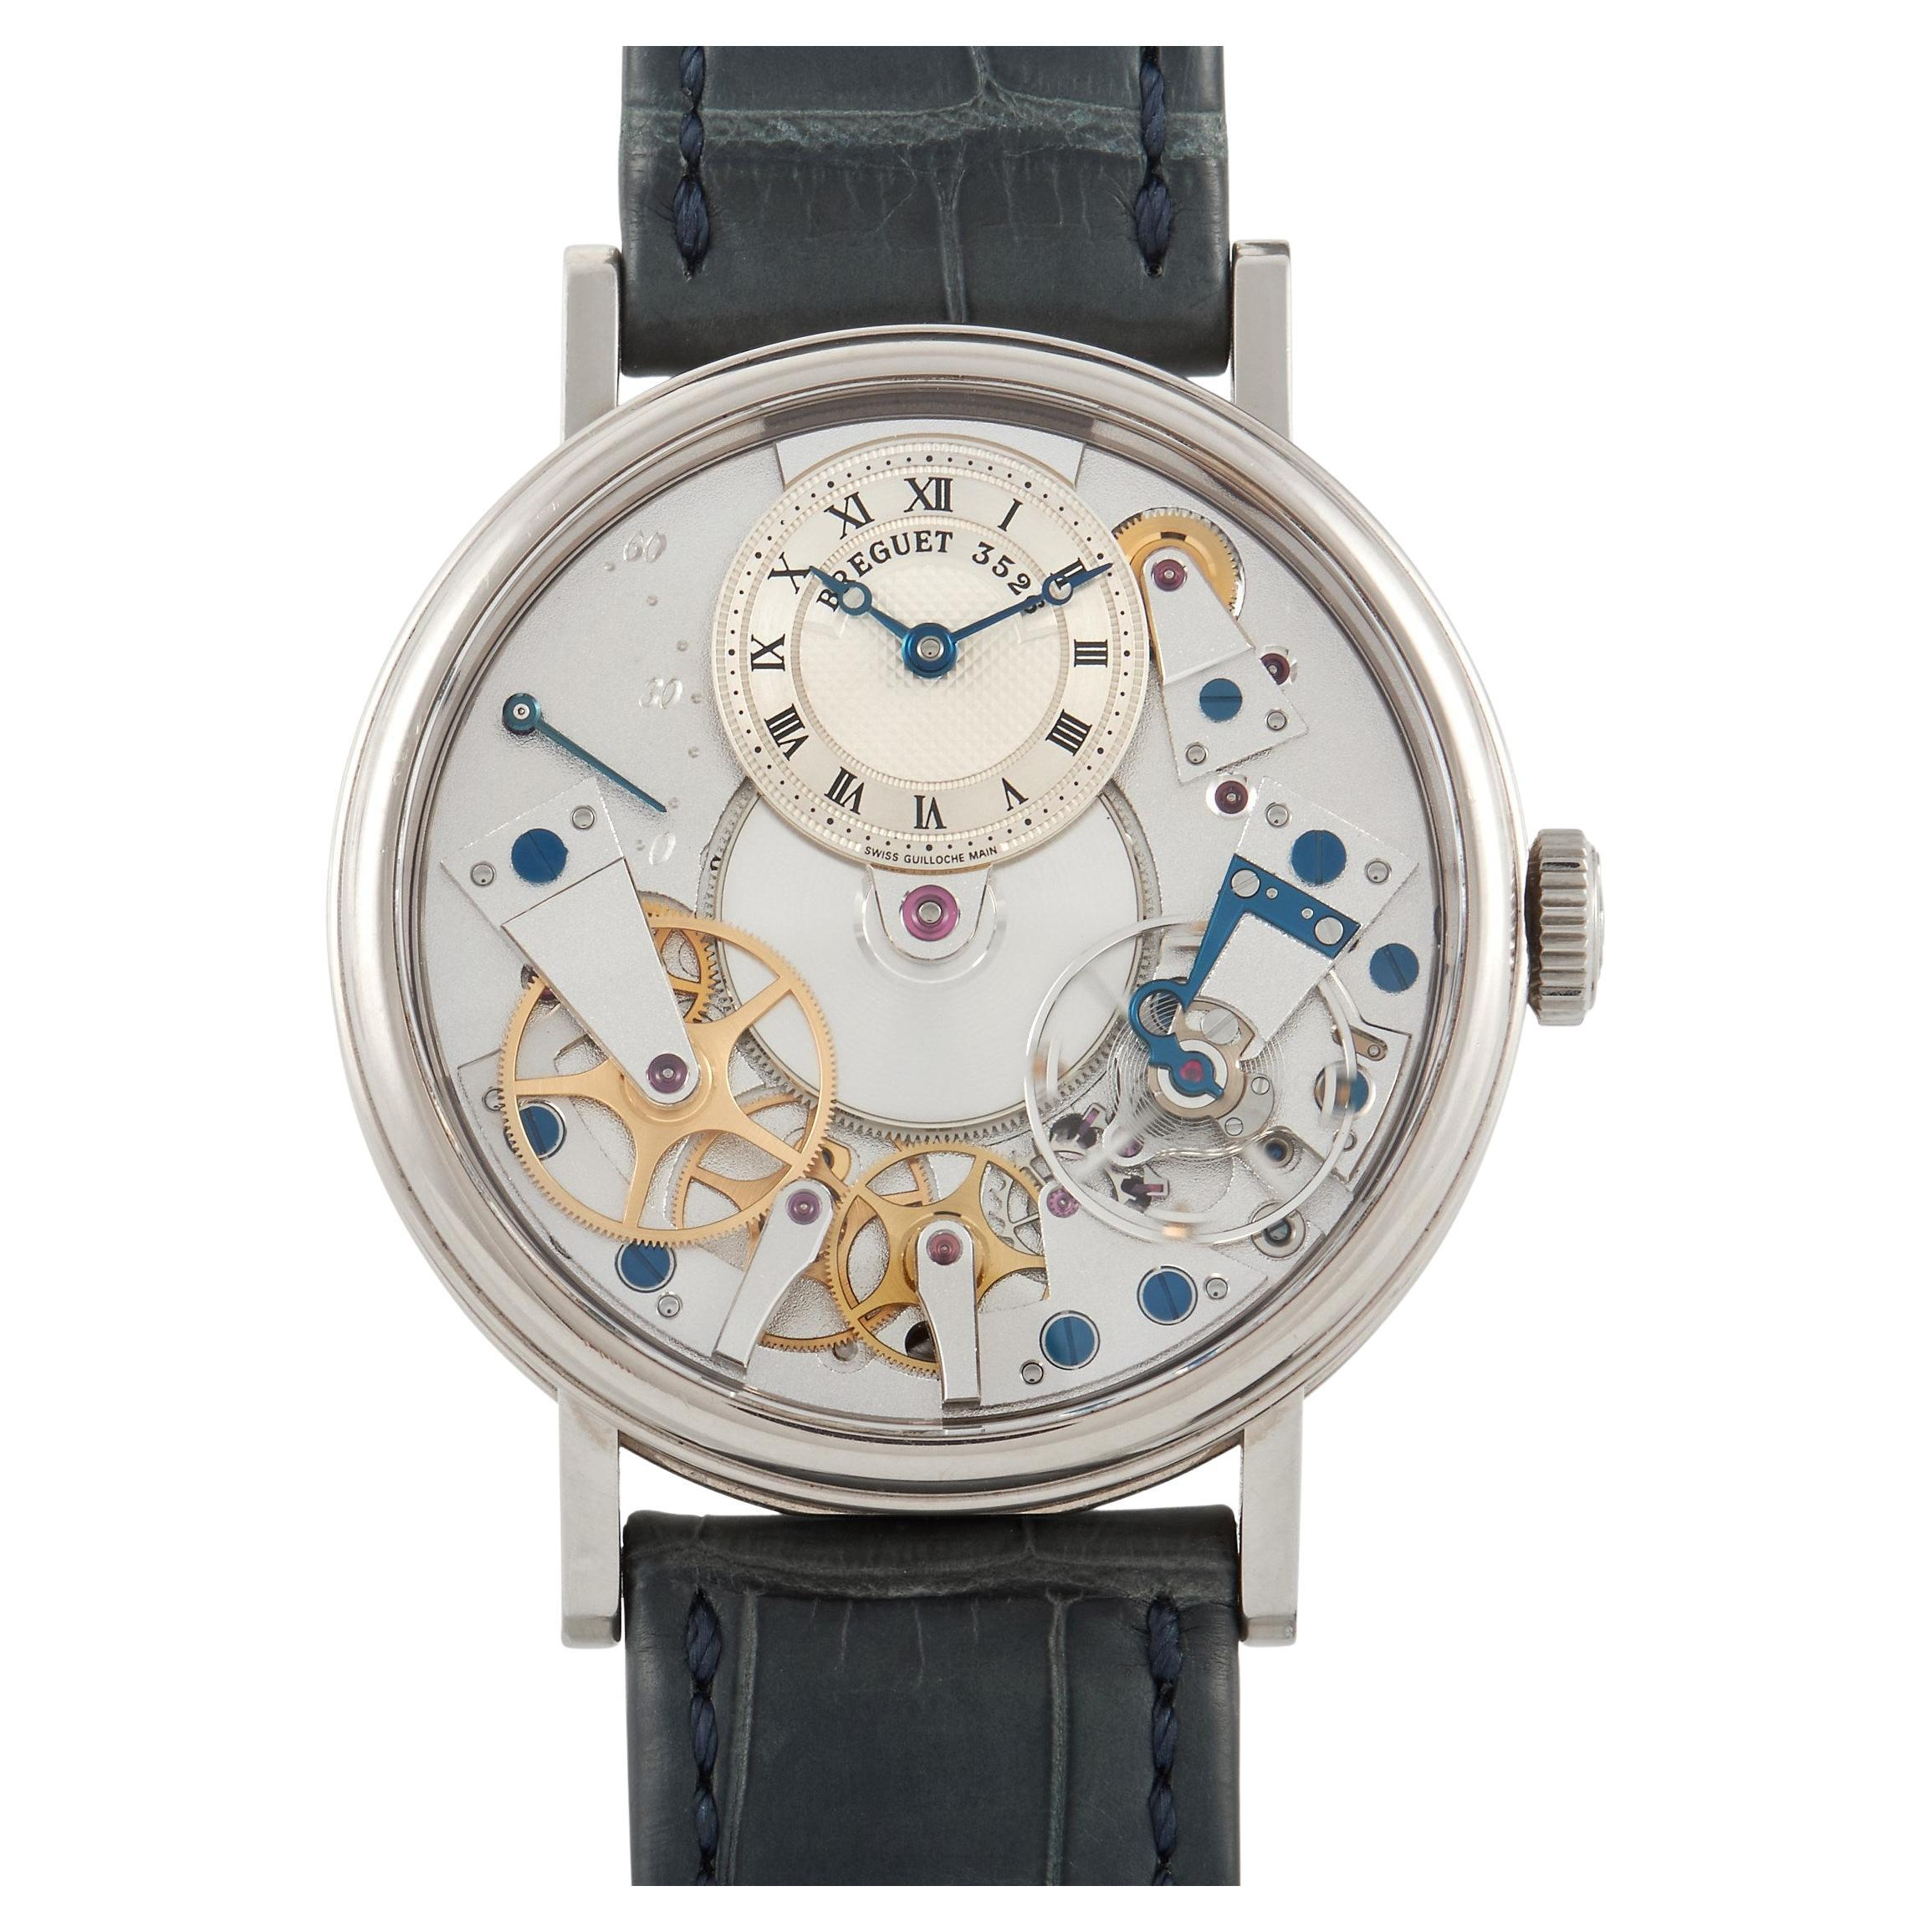 Breguet Tradition White Gold Skeleton Automatic Watch 7037BB/11/9V6